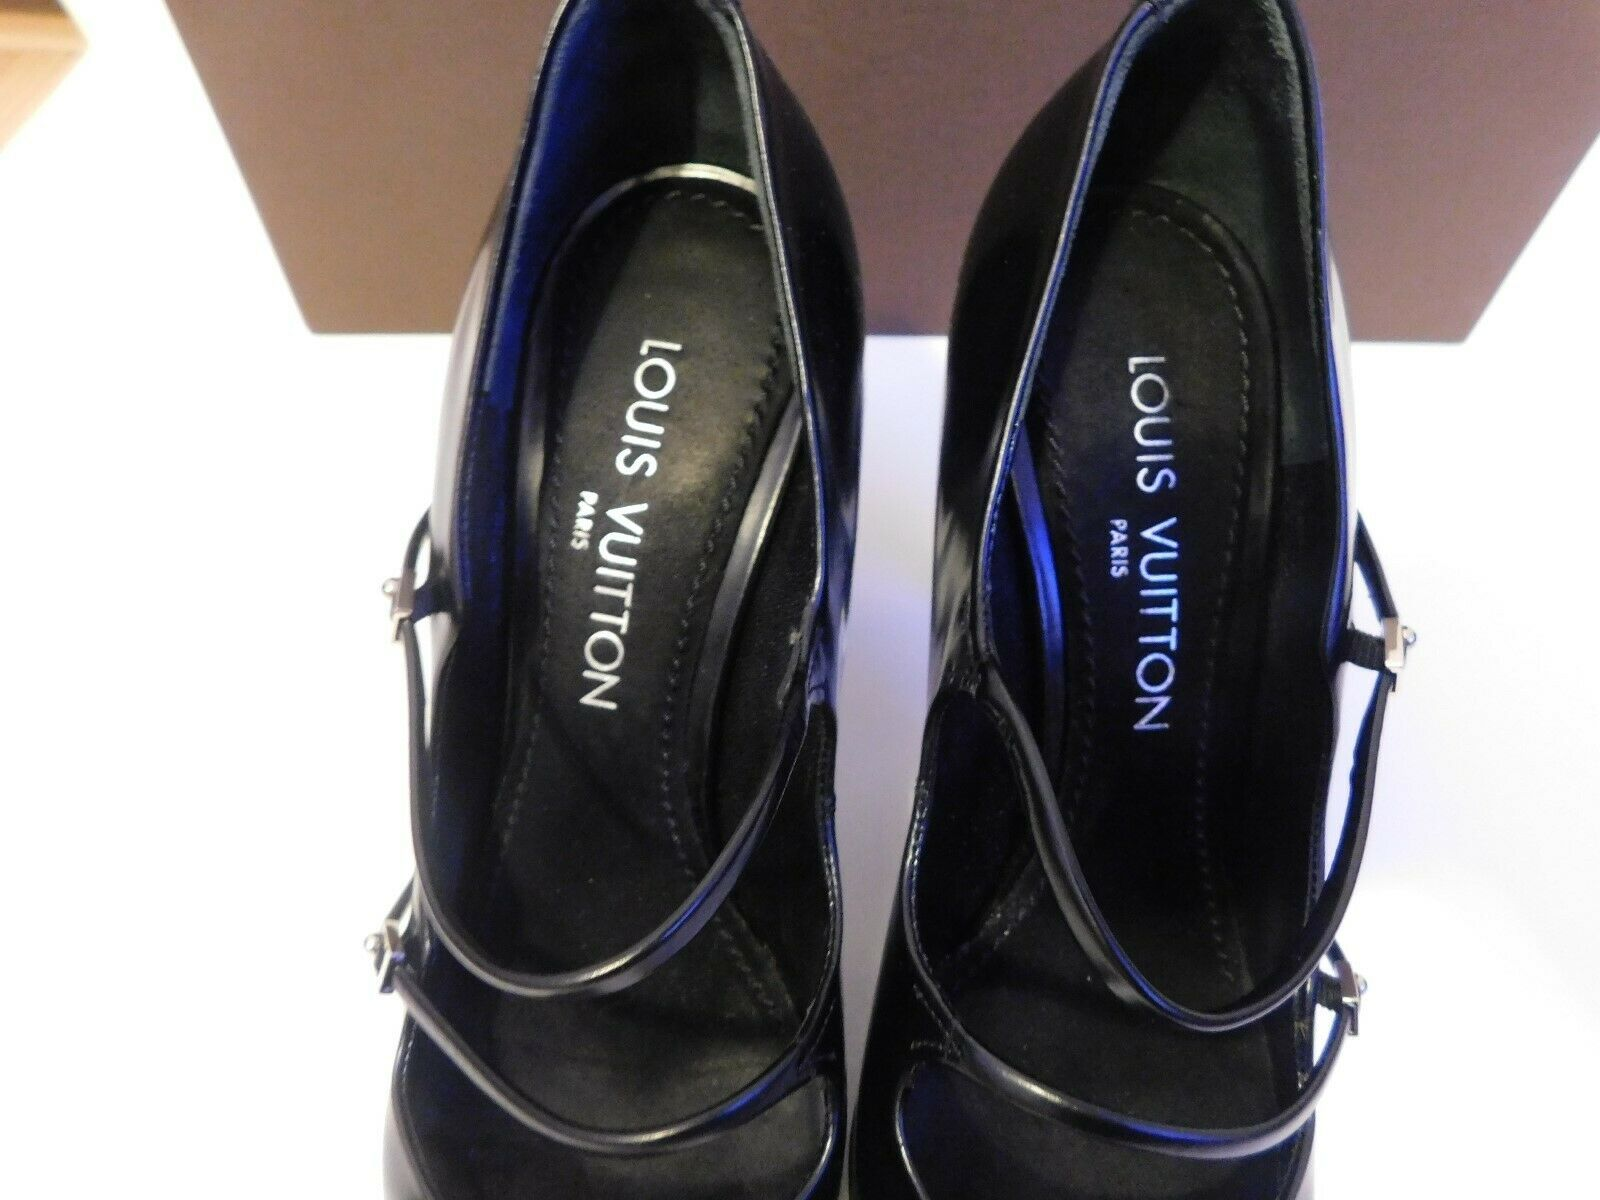 LOUIS VUITTON BLACK PUMPS SIZE 38.5 AUTHENTIC  image 2